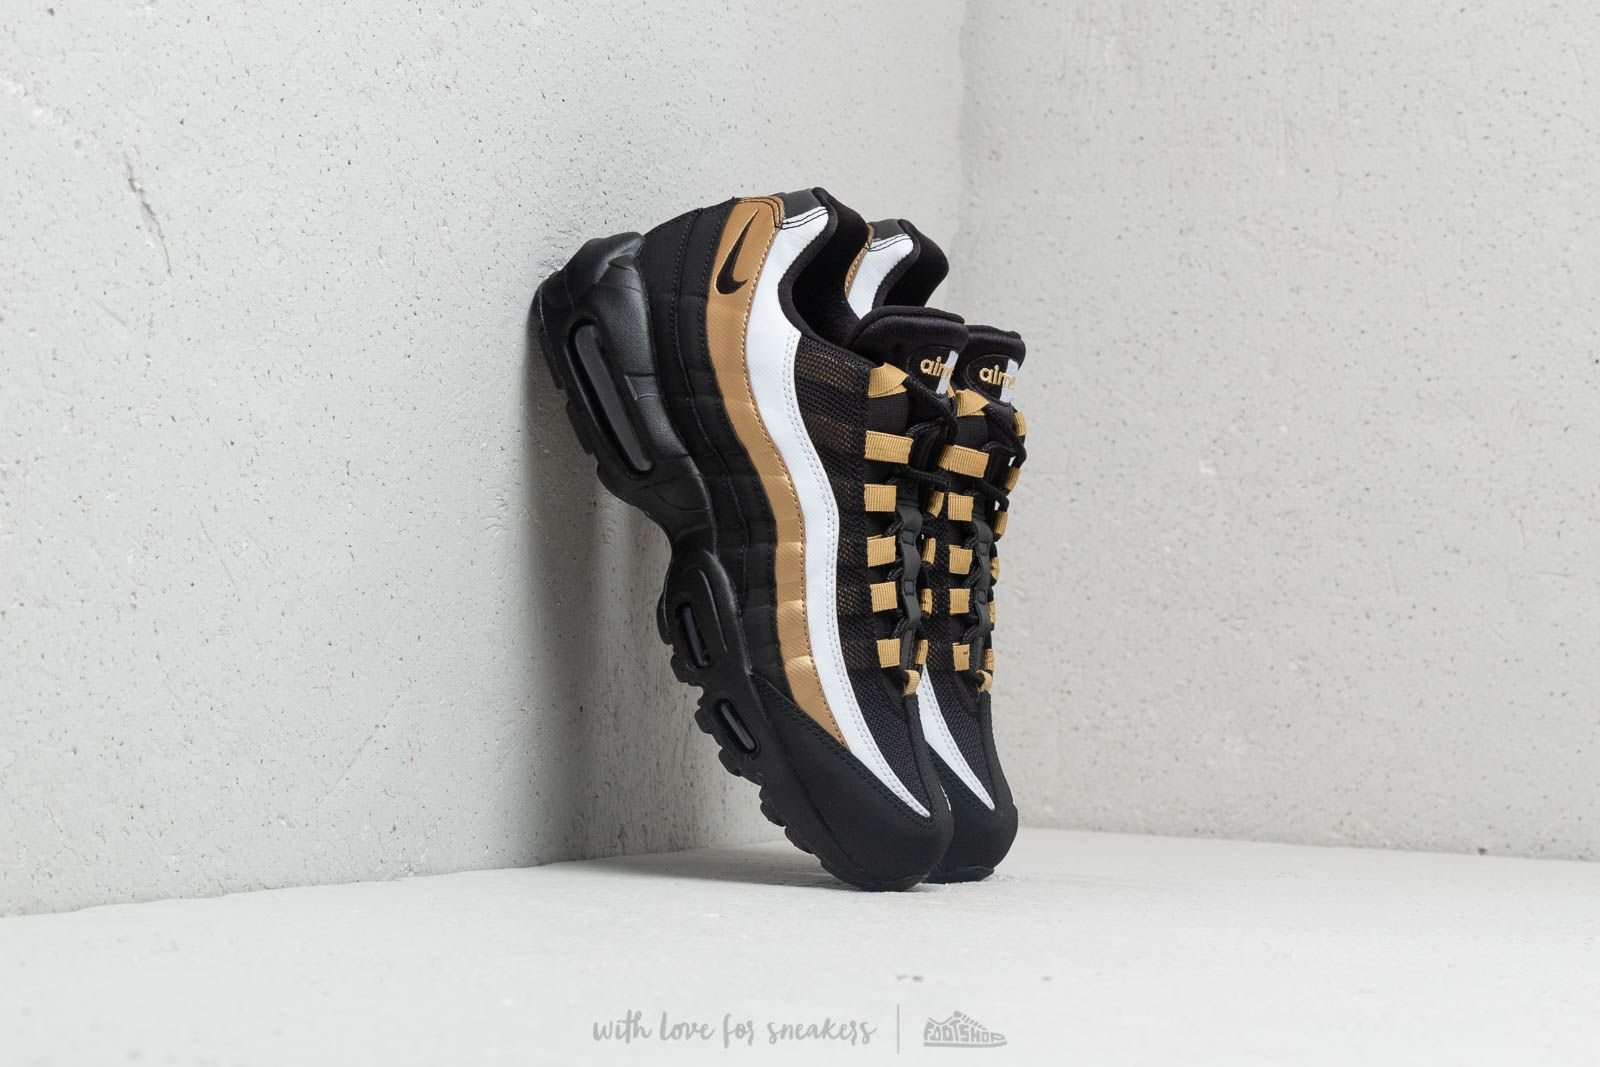 Instituto enfermo Grado Celsius  Men's shoes Nike Air Max 95 OG Black/ Black-Metallic Gold | Footshop